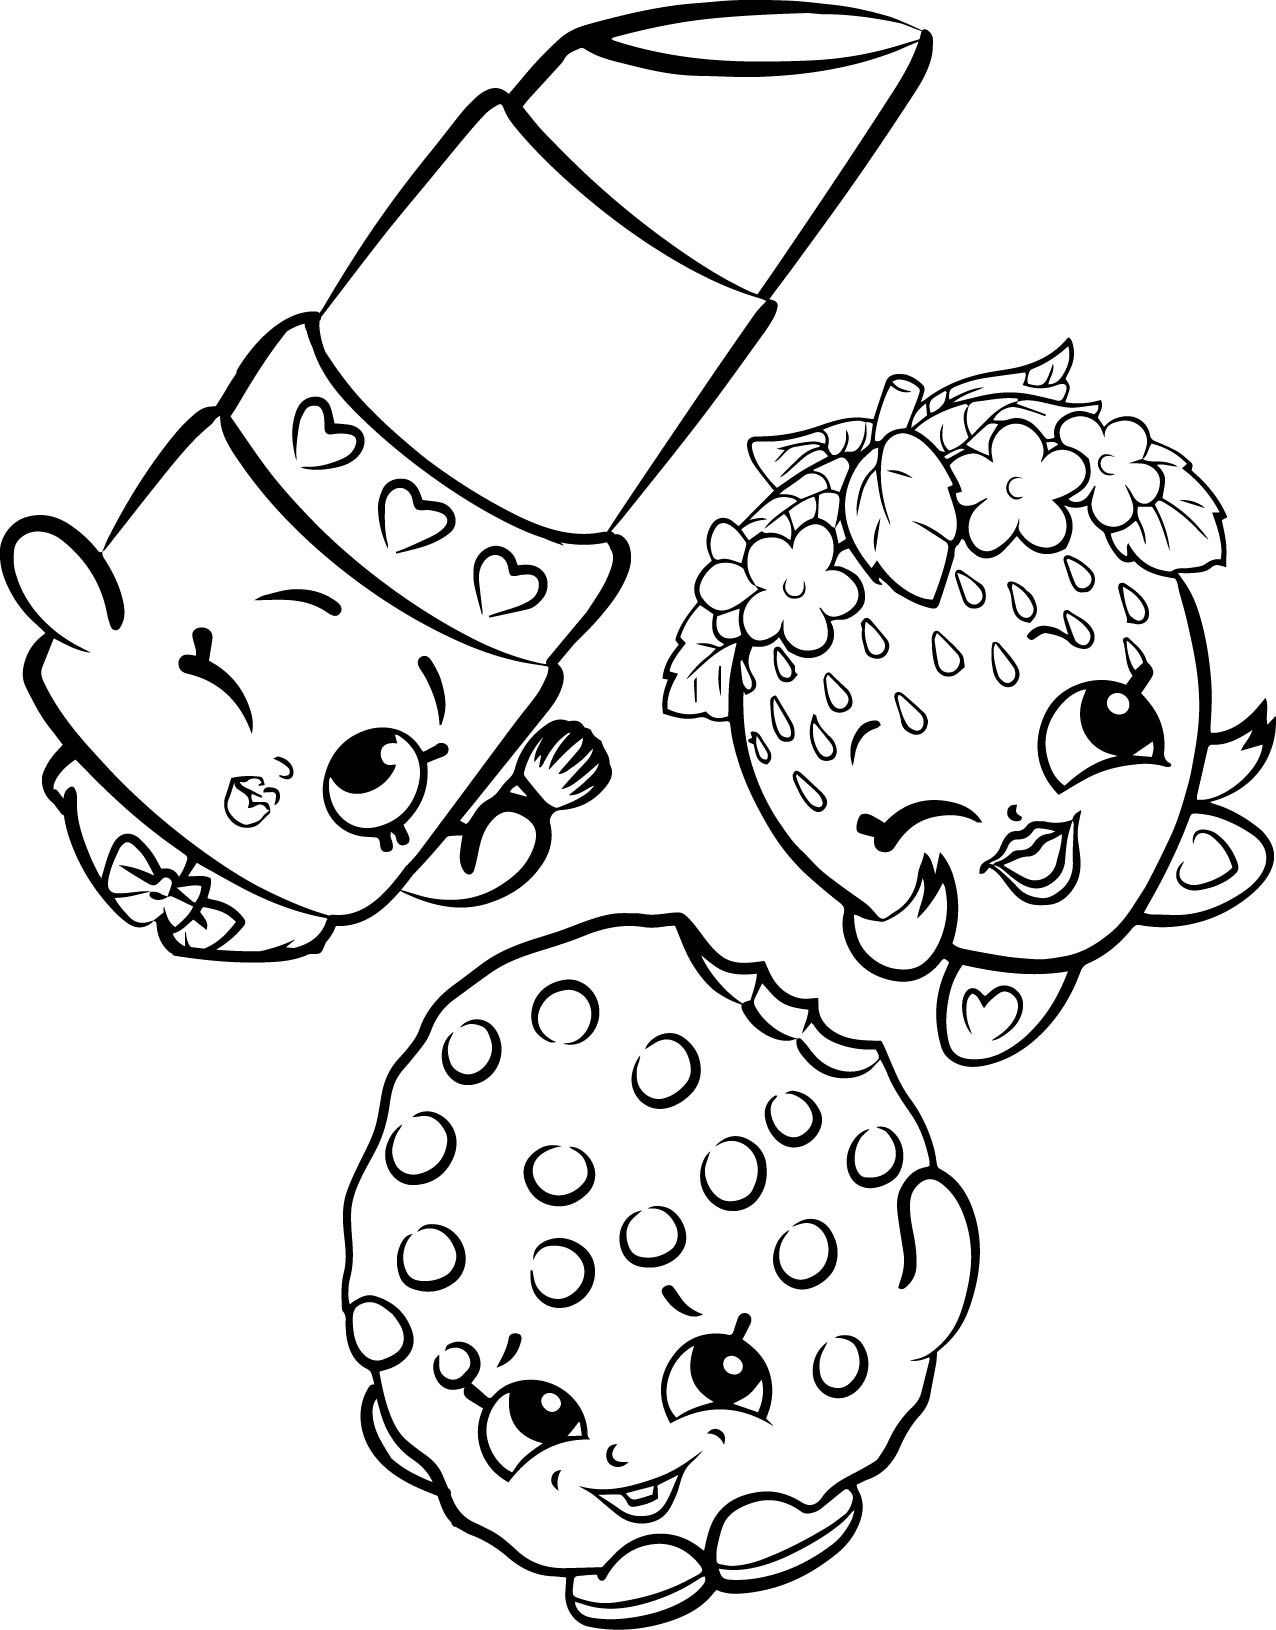 Shopkins Coloring Pages - Best Coloring Pages For Kids  Shopkins